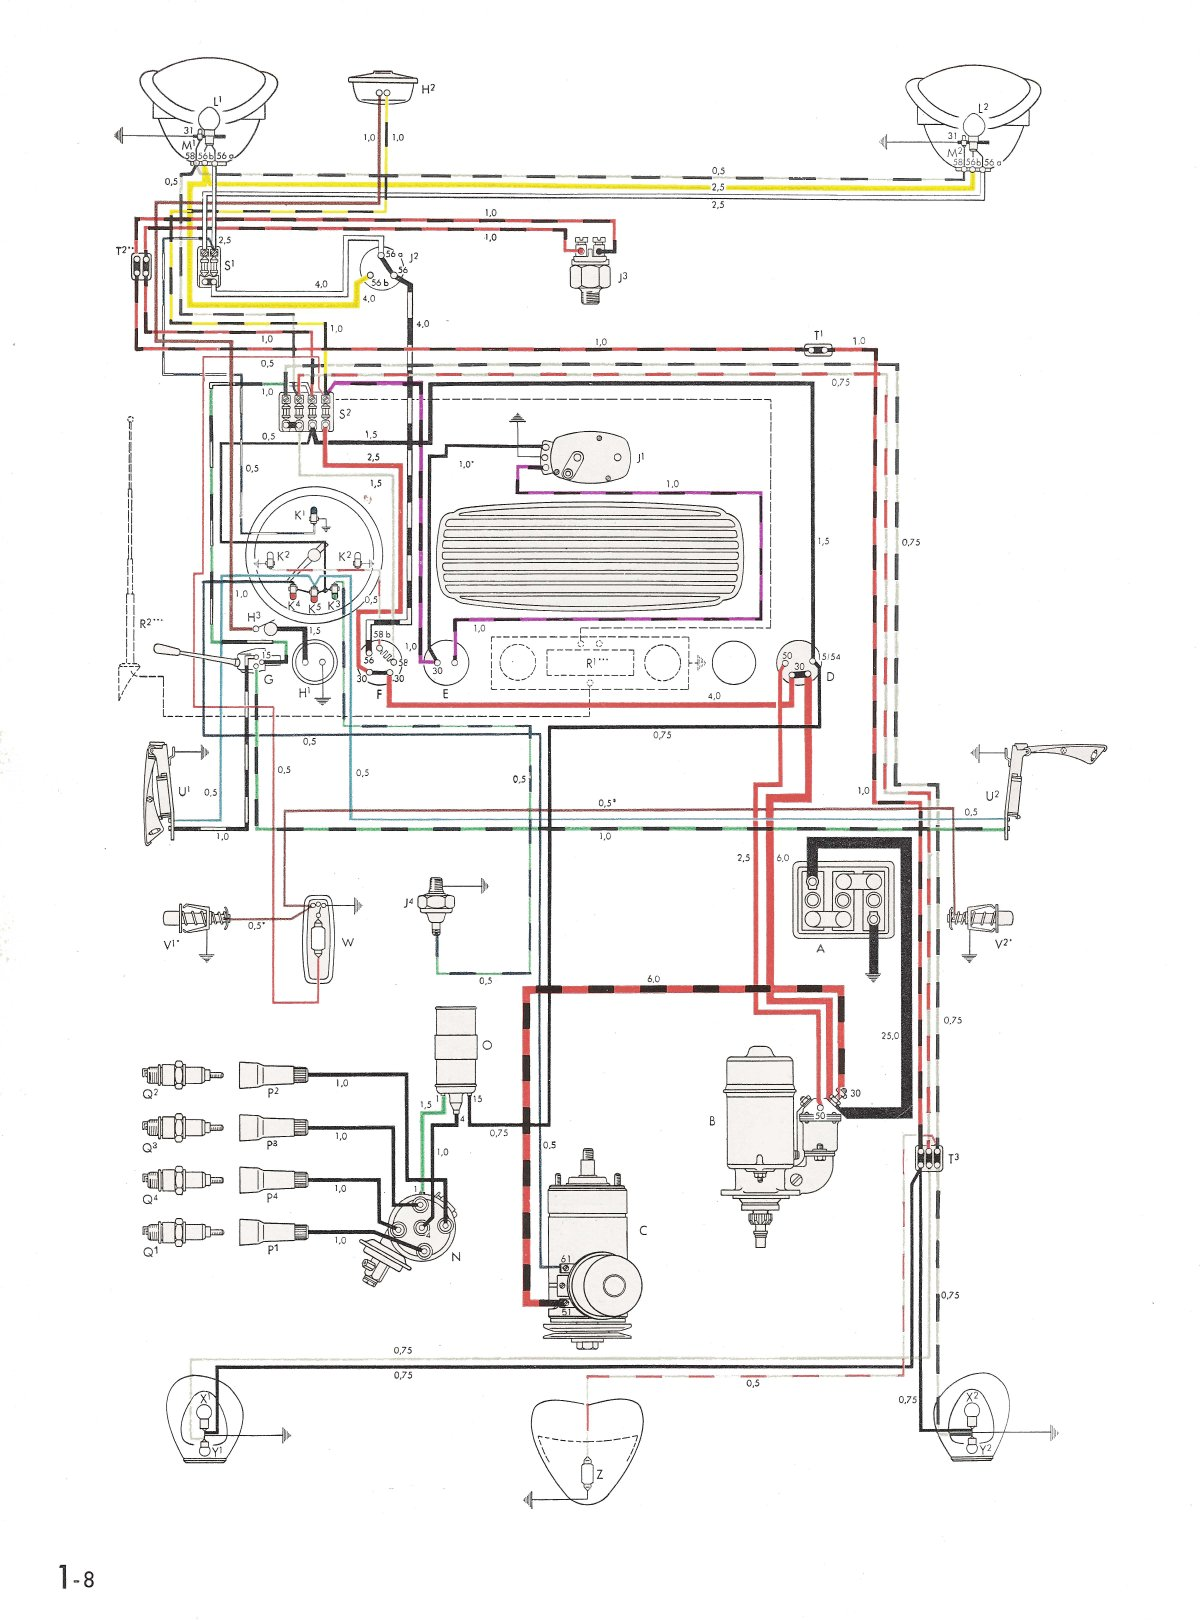 bug54 thesamba com type 1 wiring diagrams 1998 Dodge Ram 2500 Wiring Diagram at webbmarketing.co